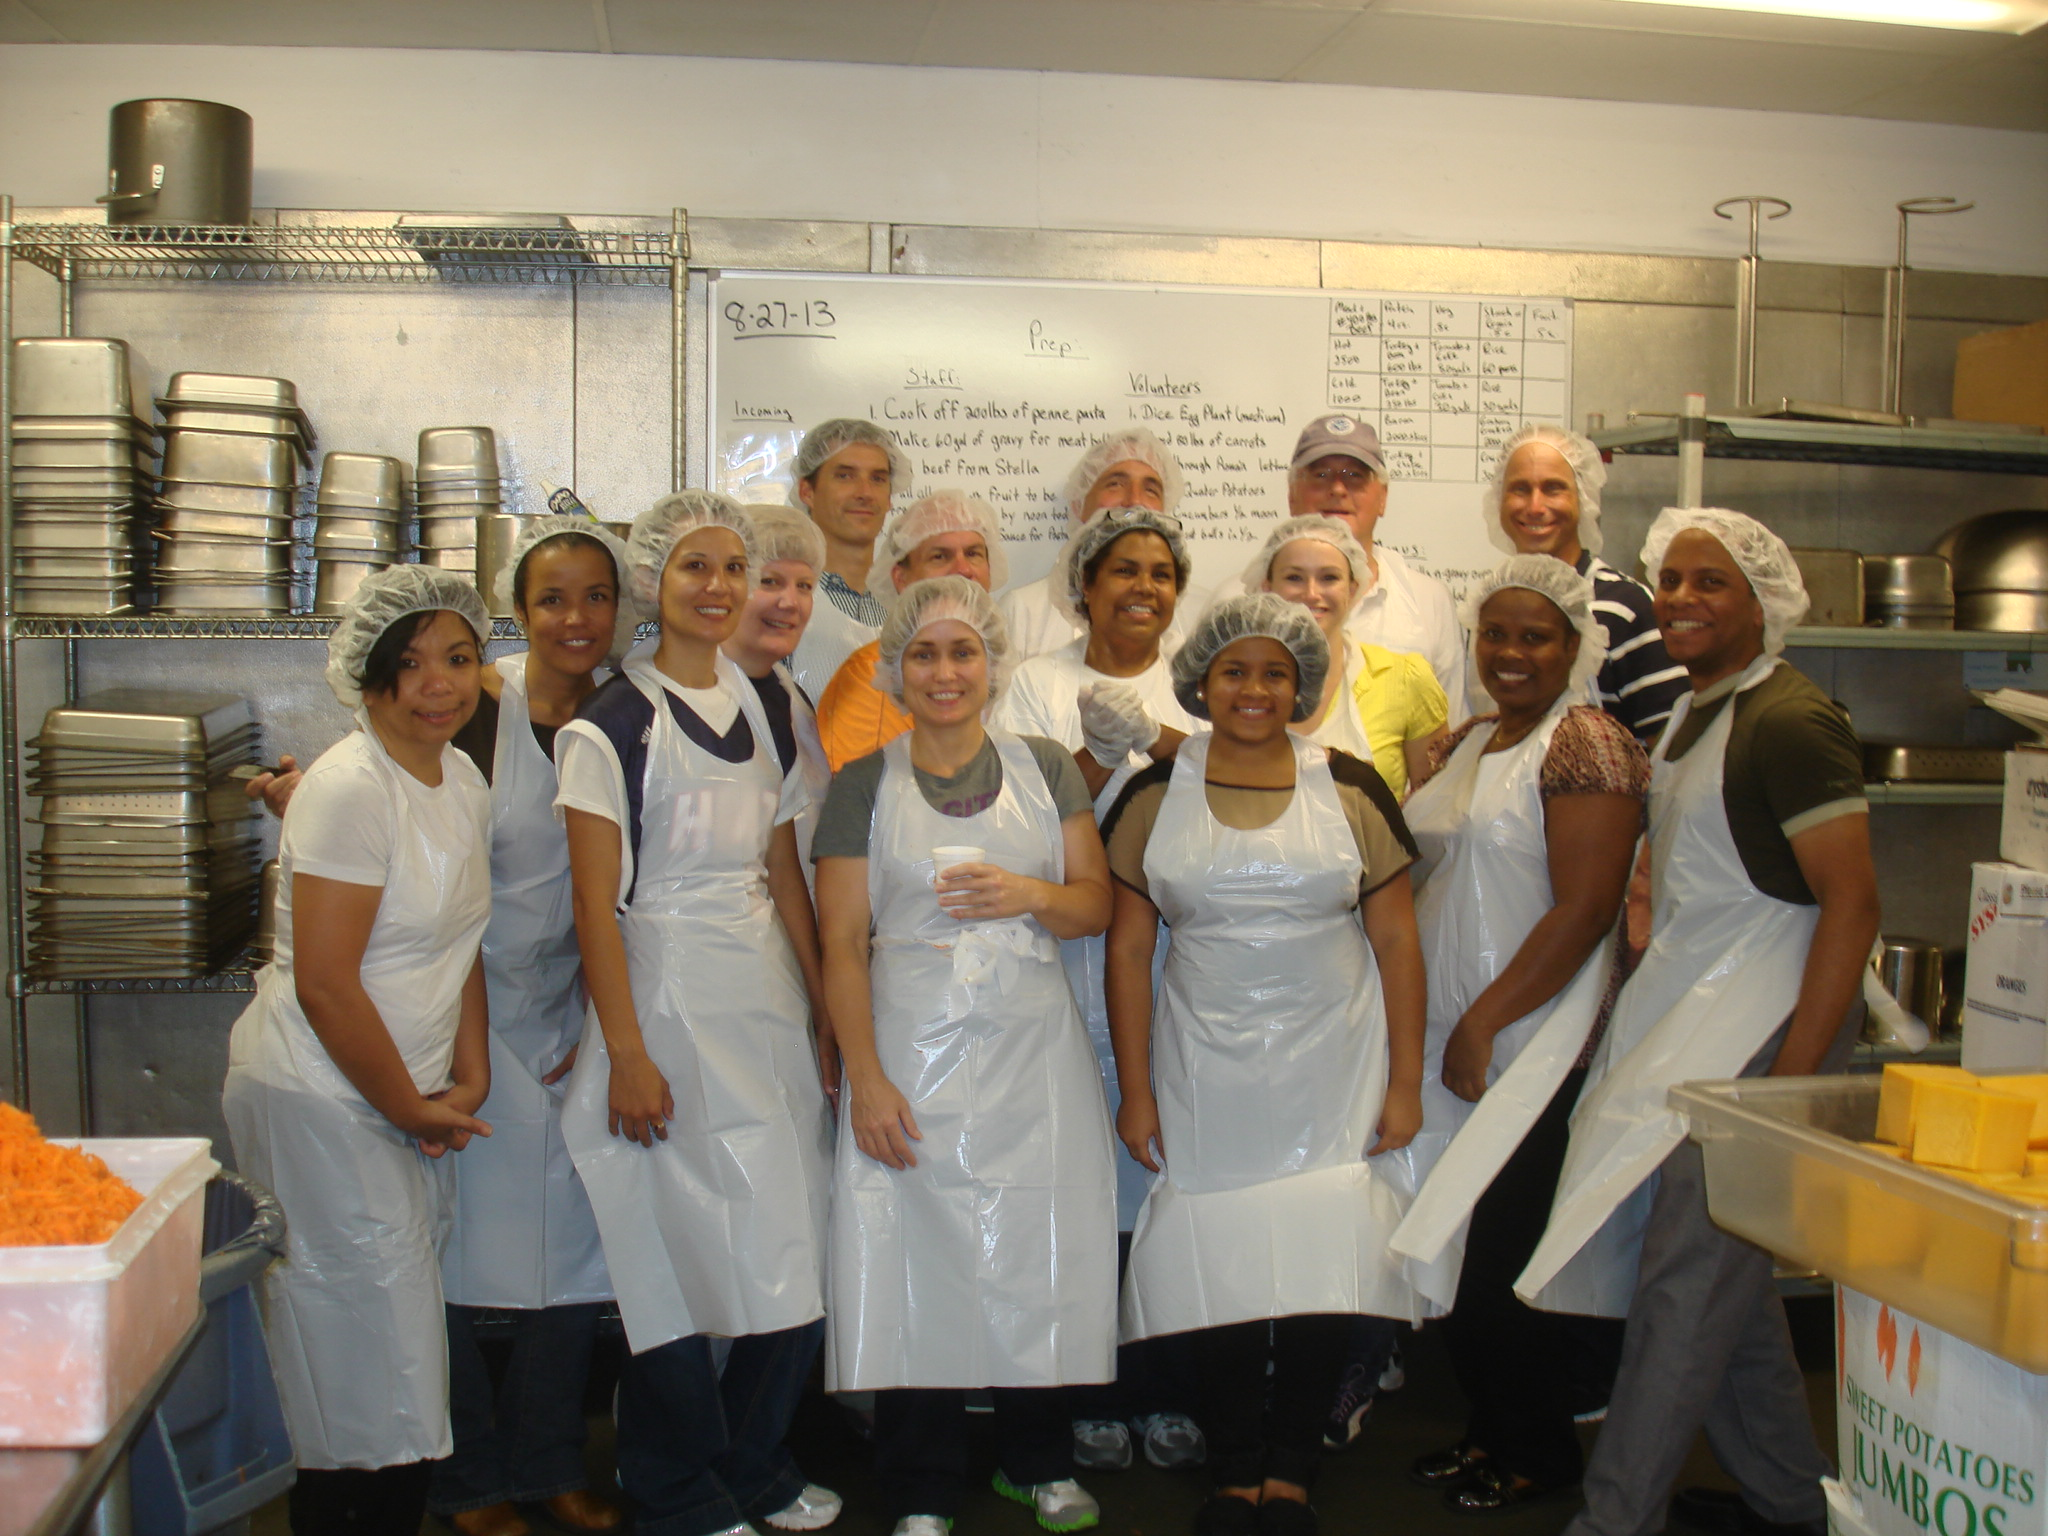 DHS Employees Volunteer at DC Central Kitchen | DHS Employee Network